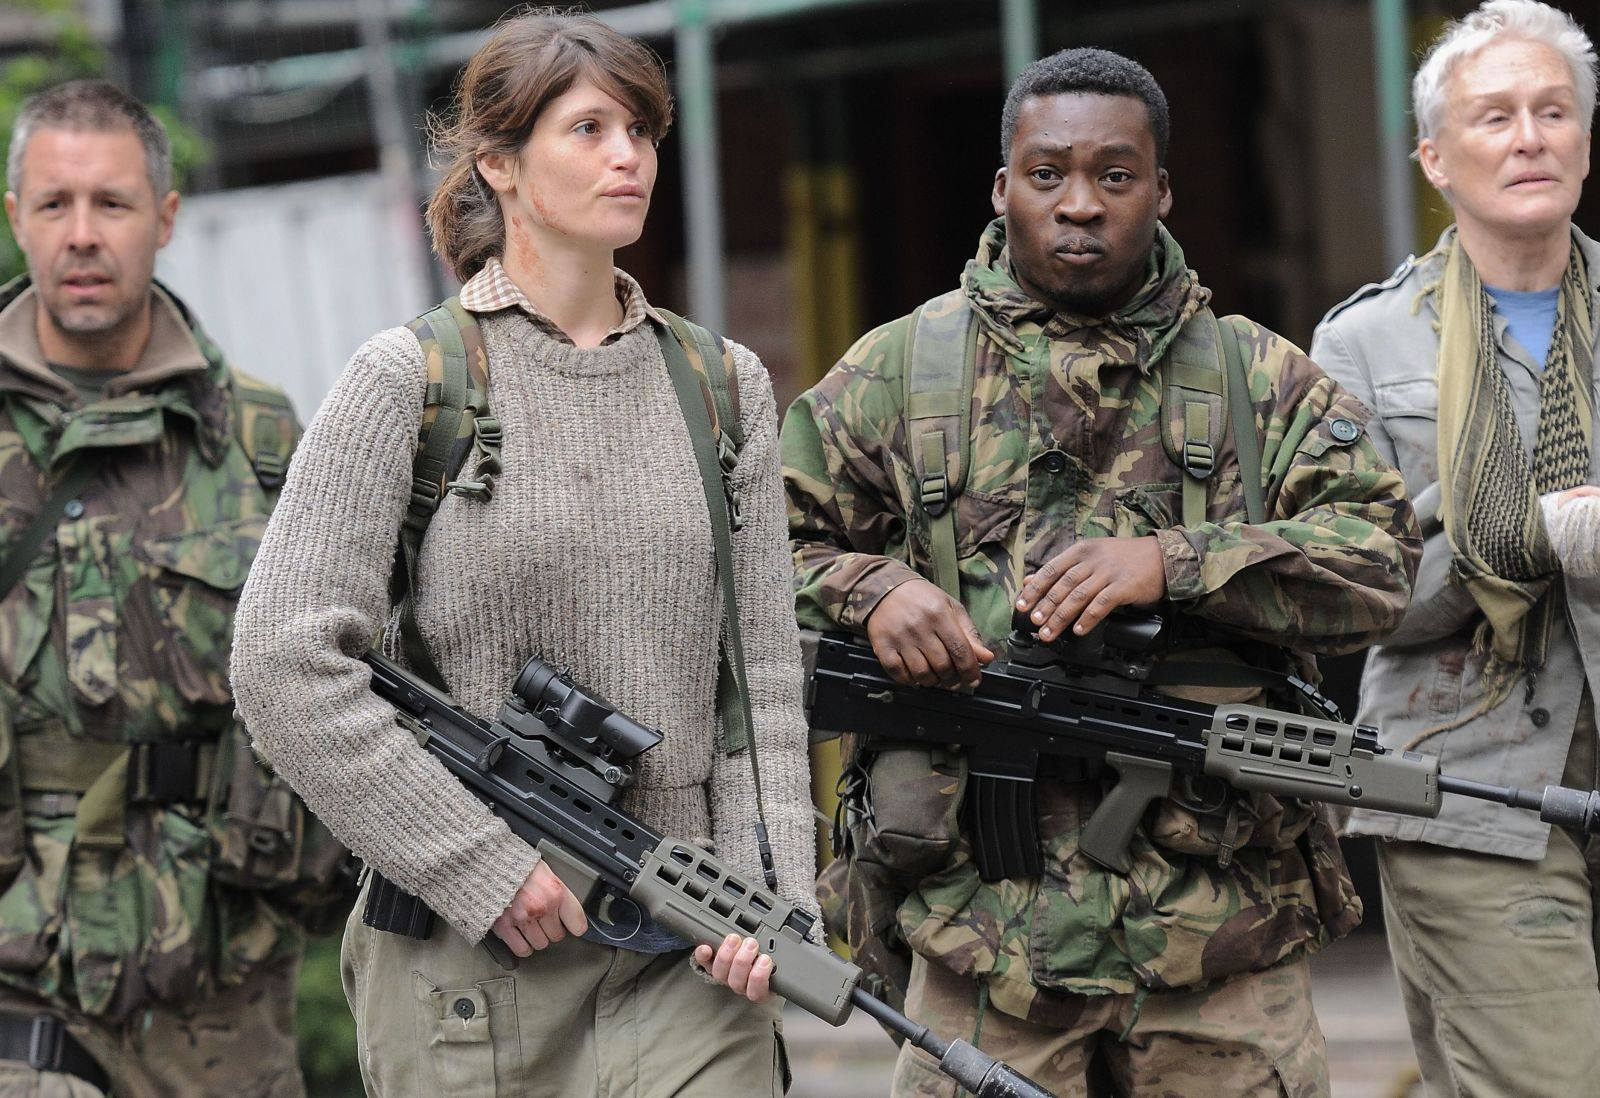 Paddy Considine, Gemma Arterton, Fisayo Akinade, Glenn Close in The Girl With All the Gifts (2016)